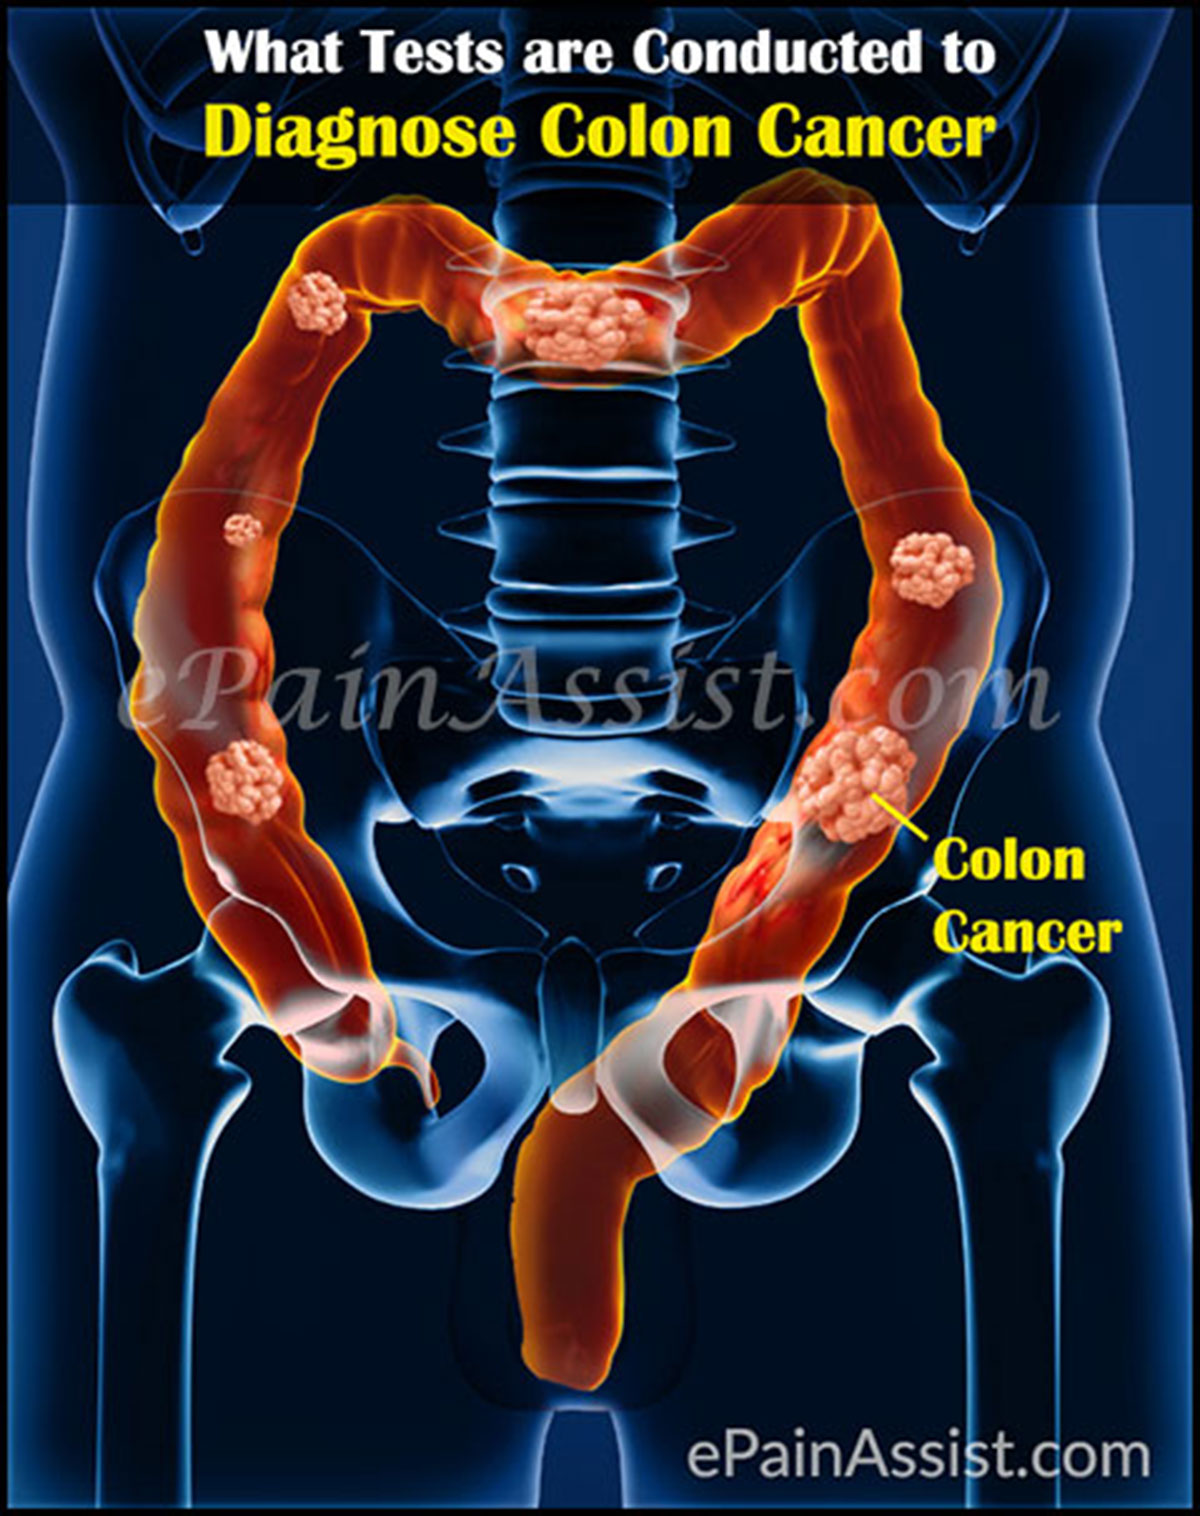 What Tests are Conducted to Diagnose Colon Cancer